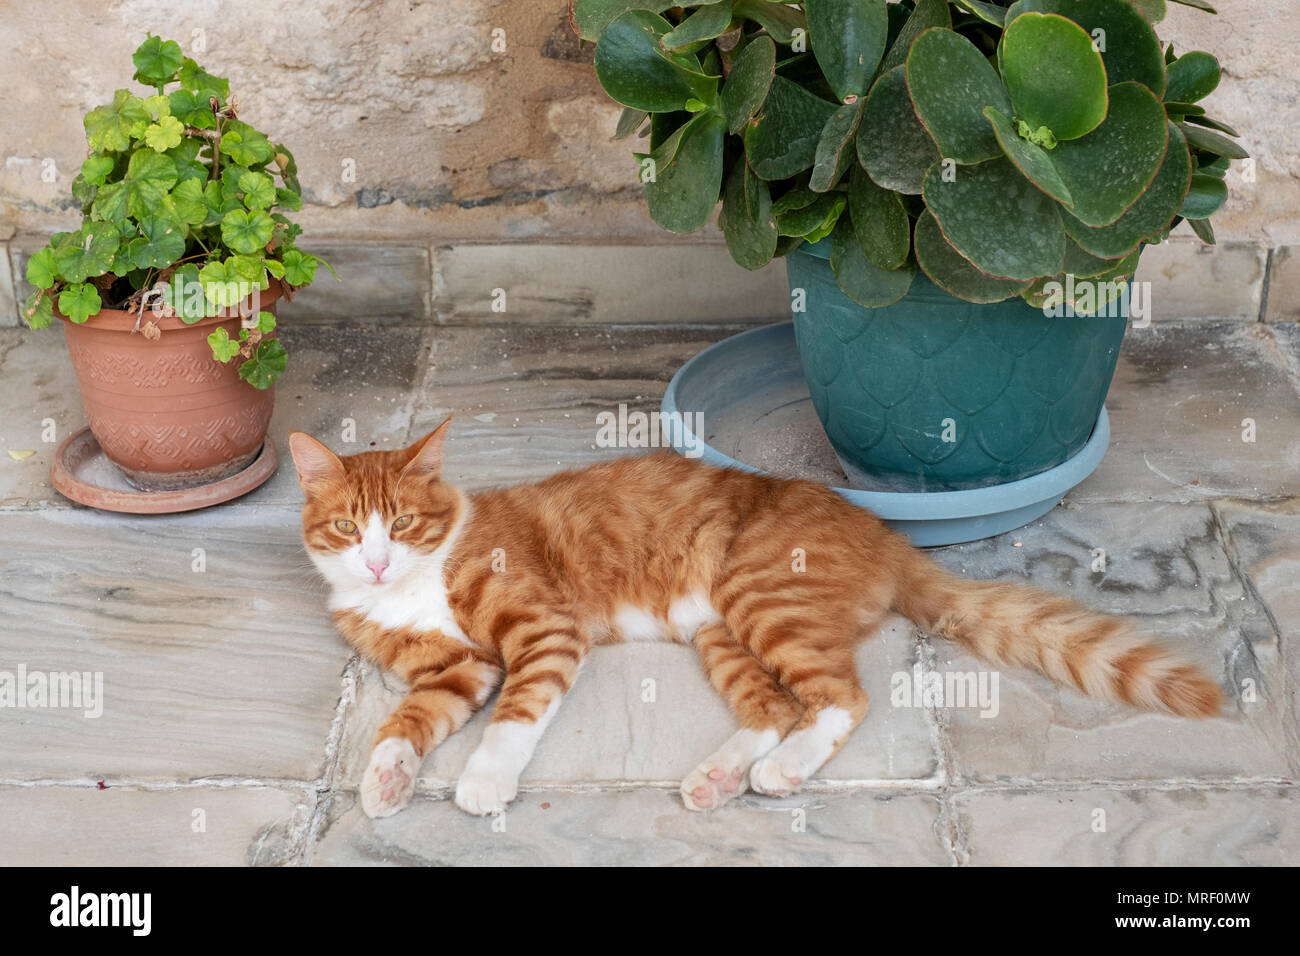 A resident ginger cat at the Revakli Ev Guest house, Dipkarpaz, Northern Cyprus - Stock Image